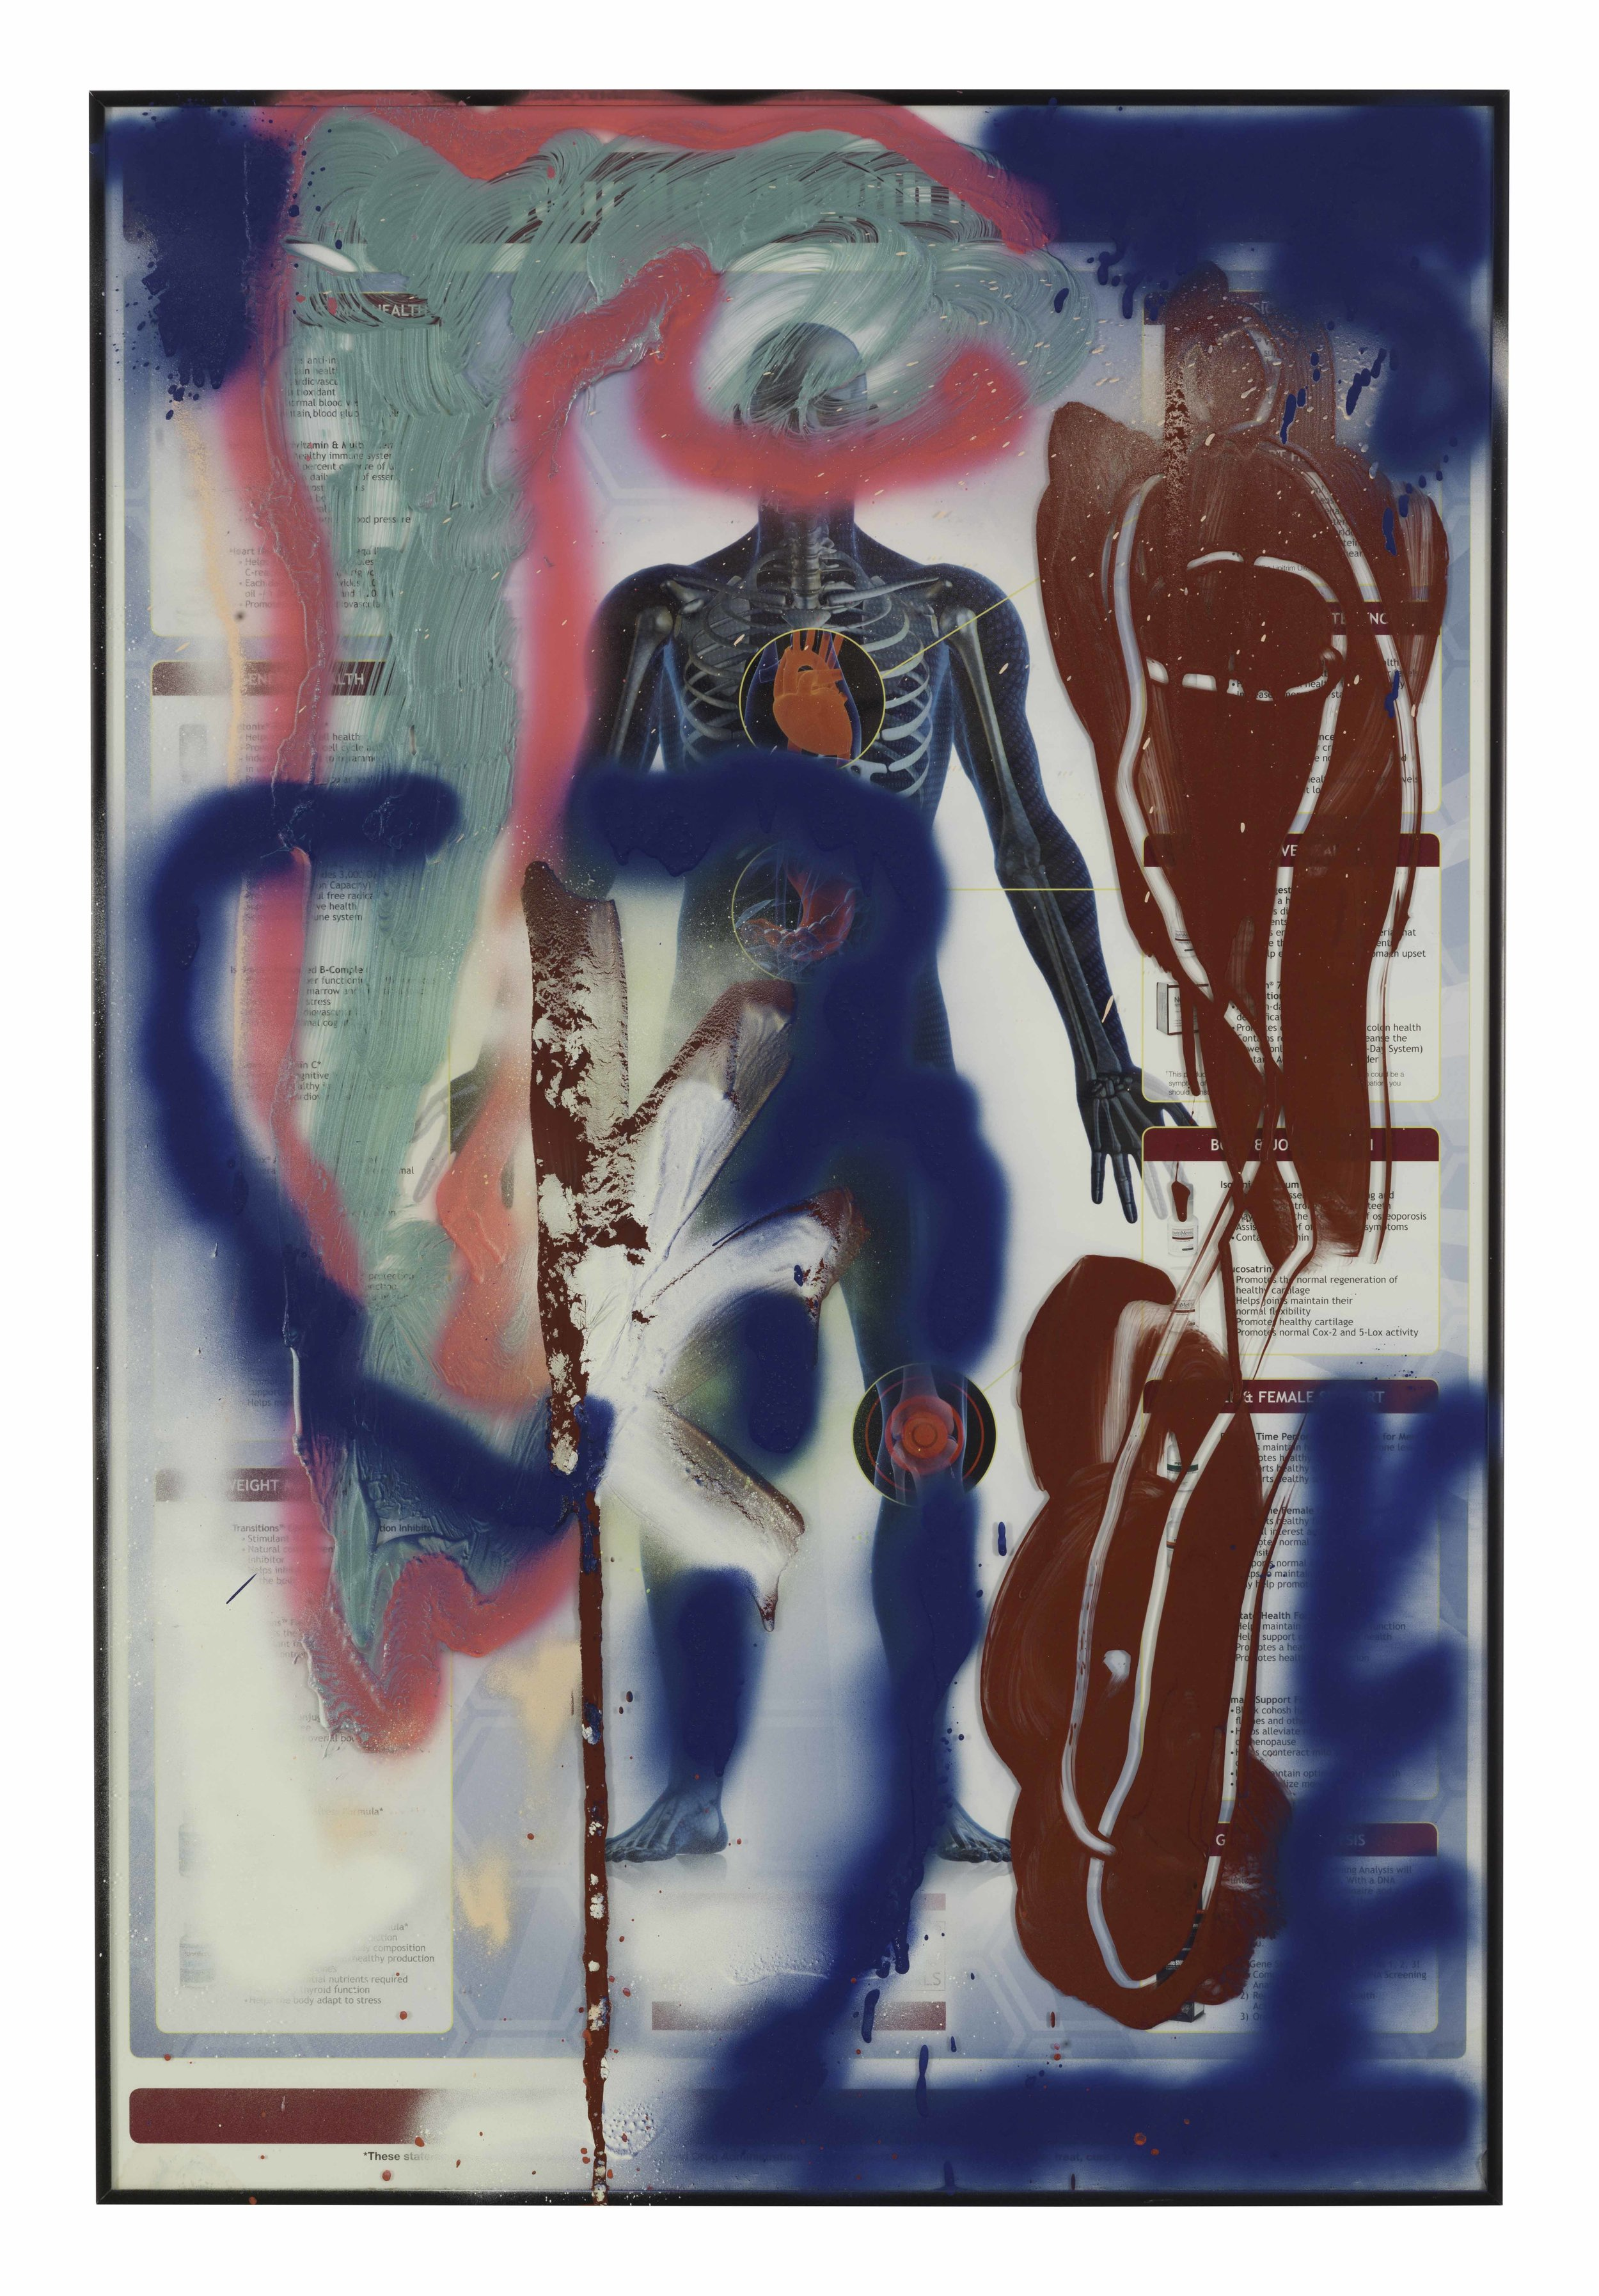 Drew Beattie and Ben Shepard  Anatomy in Red and Blue   2016 acrylic and spray paint on framed poster 36¼ x 24 inches